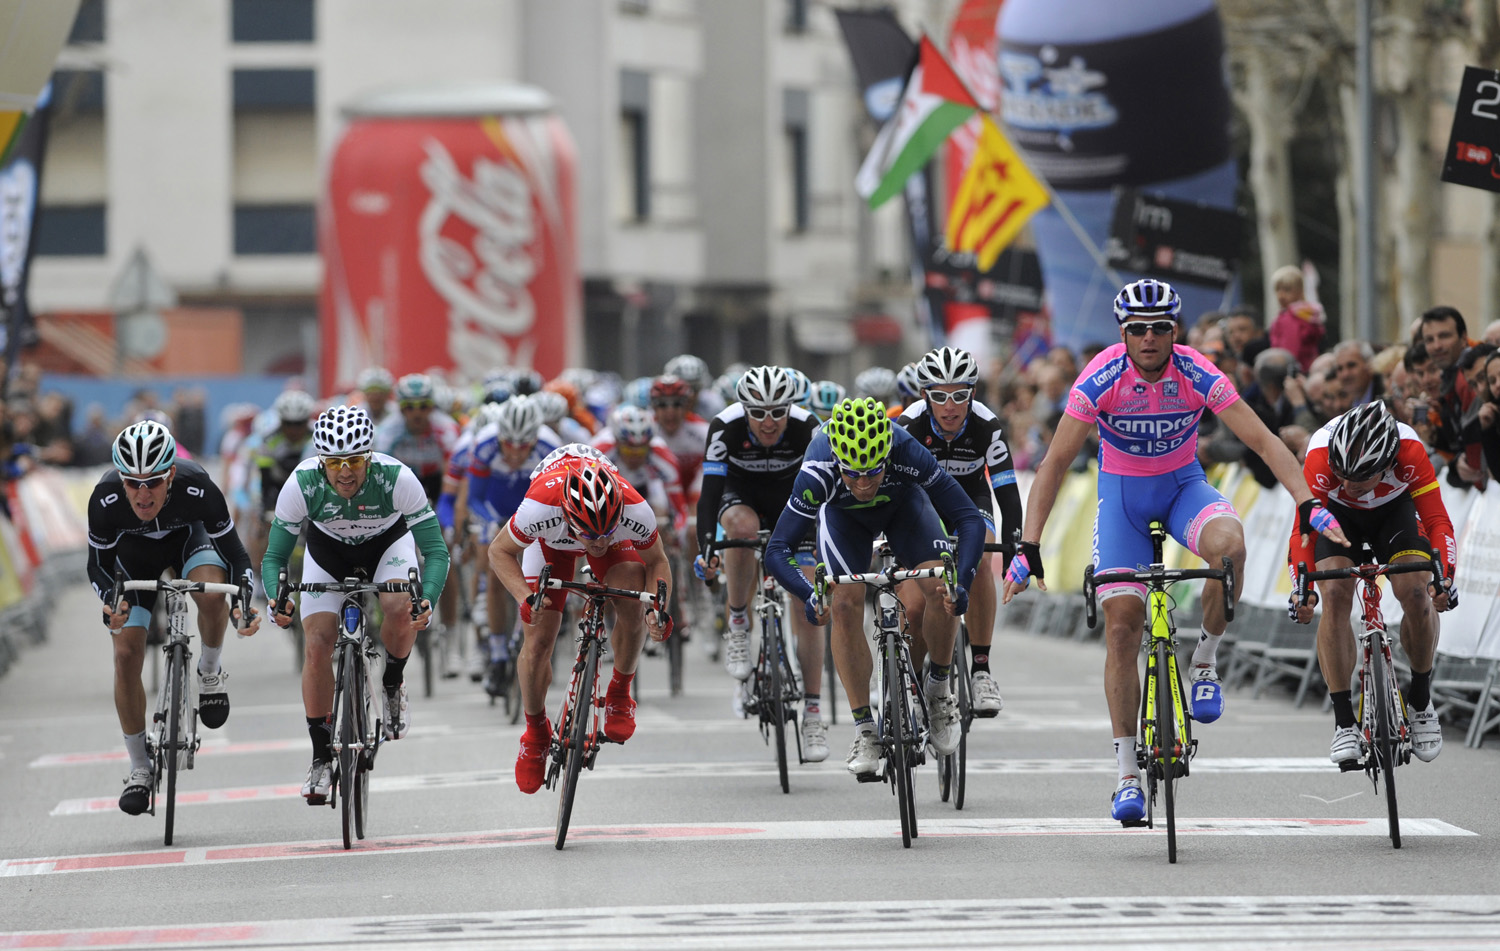 Alessandro Petacchi wins sprint finish, Volta a Catalunya 2011 stage two